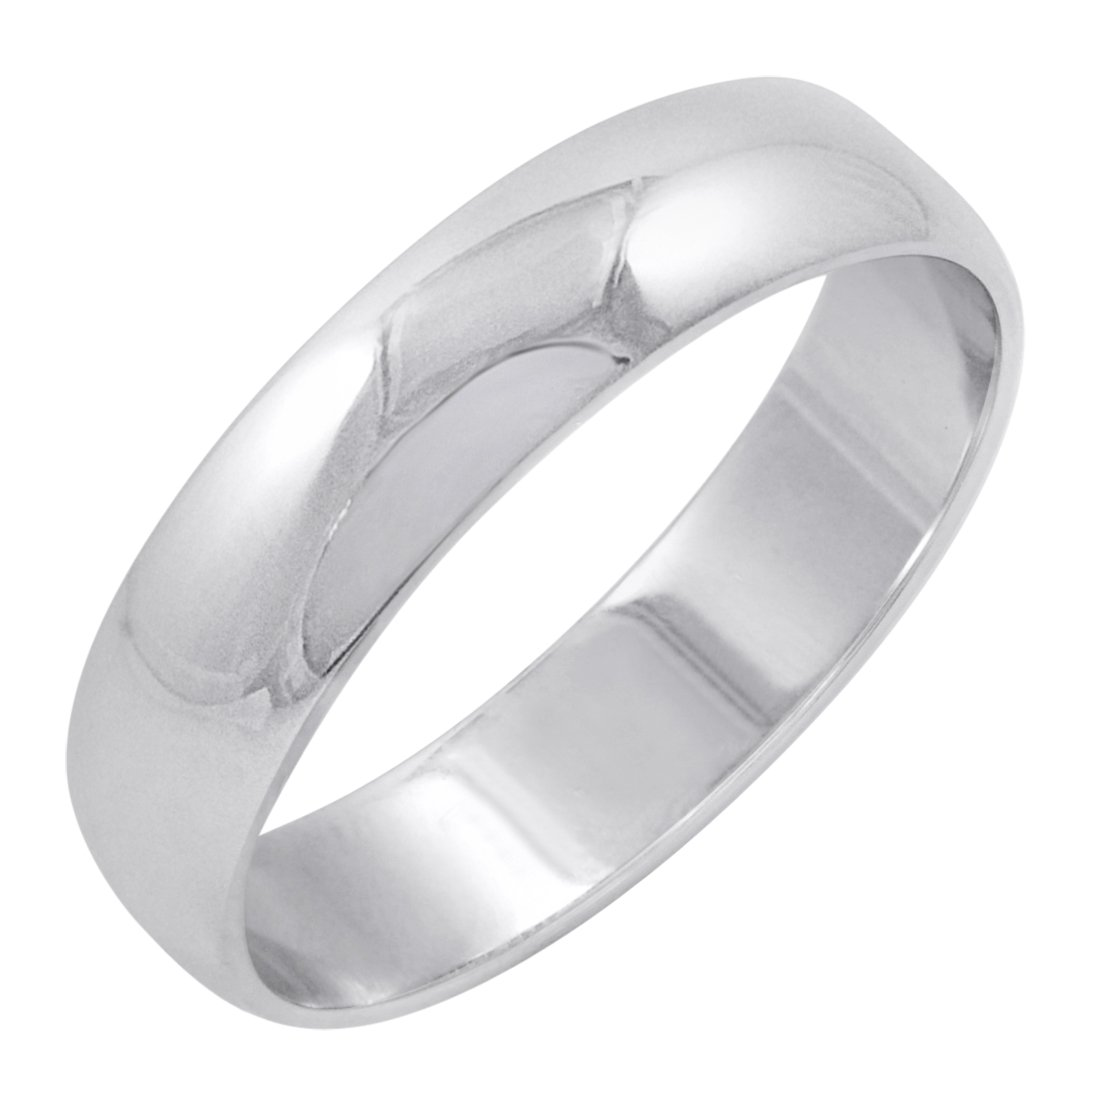 Men's 10K White Gold 5mm Classic Fit Plain Wedding Band (Available Ring Sizes 8-12 1/2) Size 12 by Oxford Ivy (Image #1)